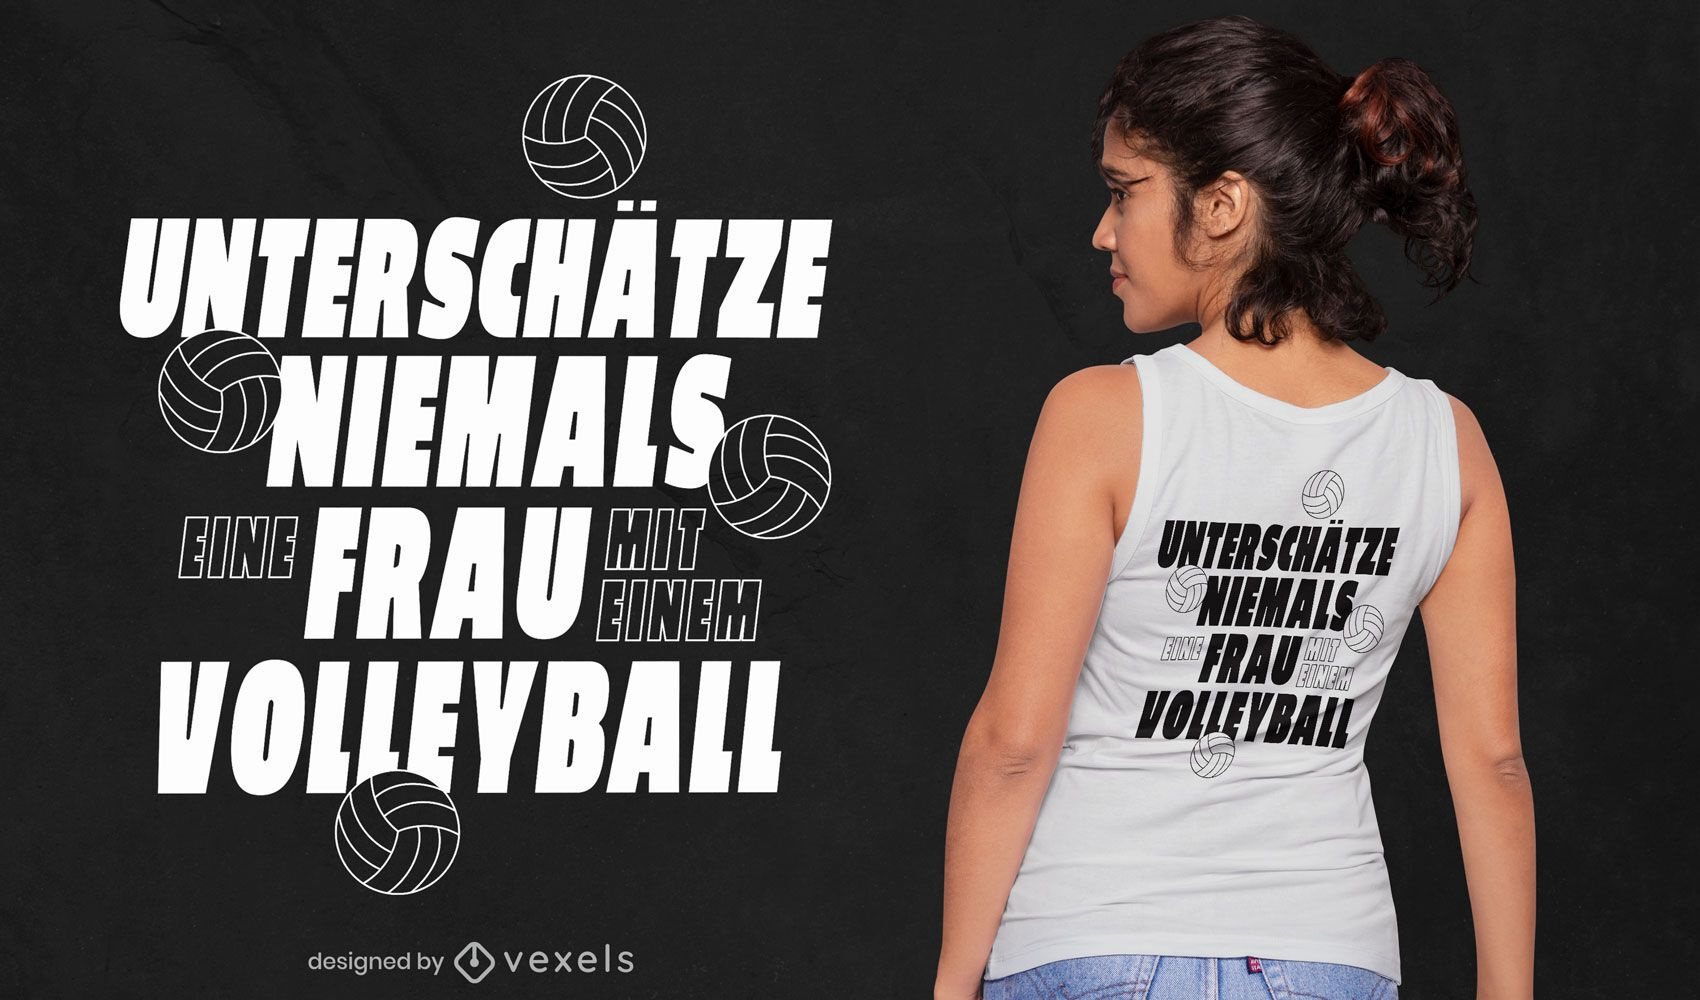 Volleyball woman quote t-shirt design